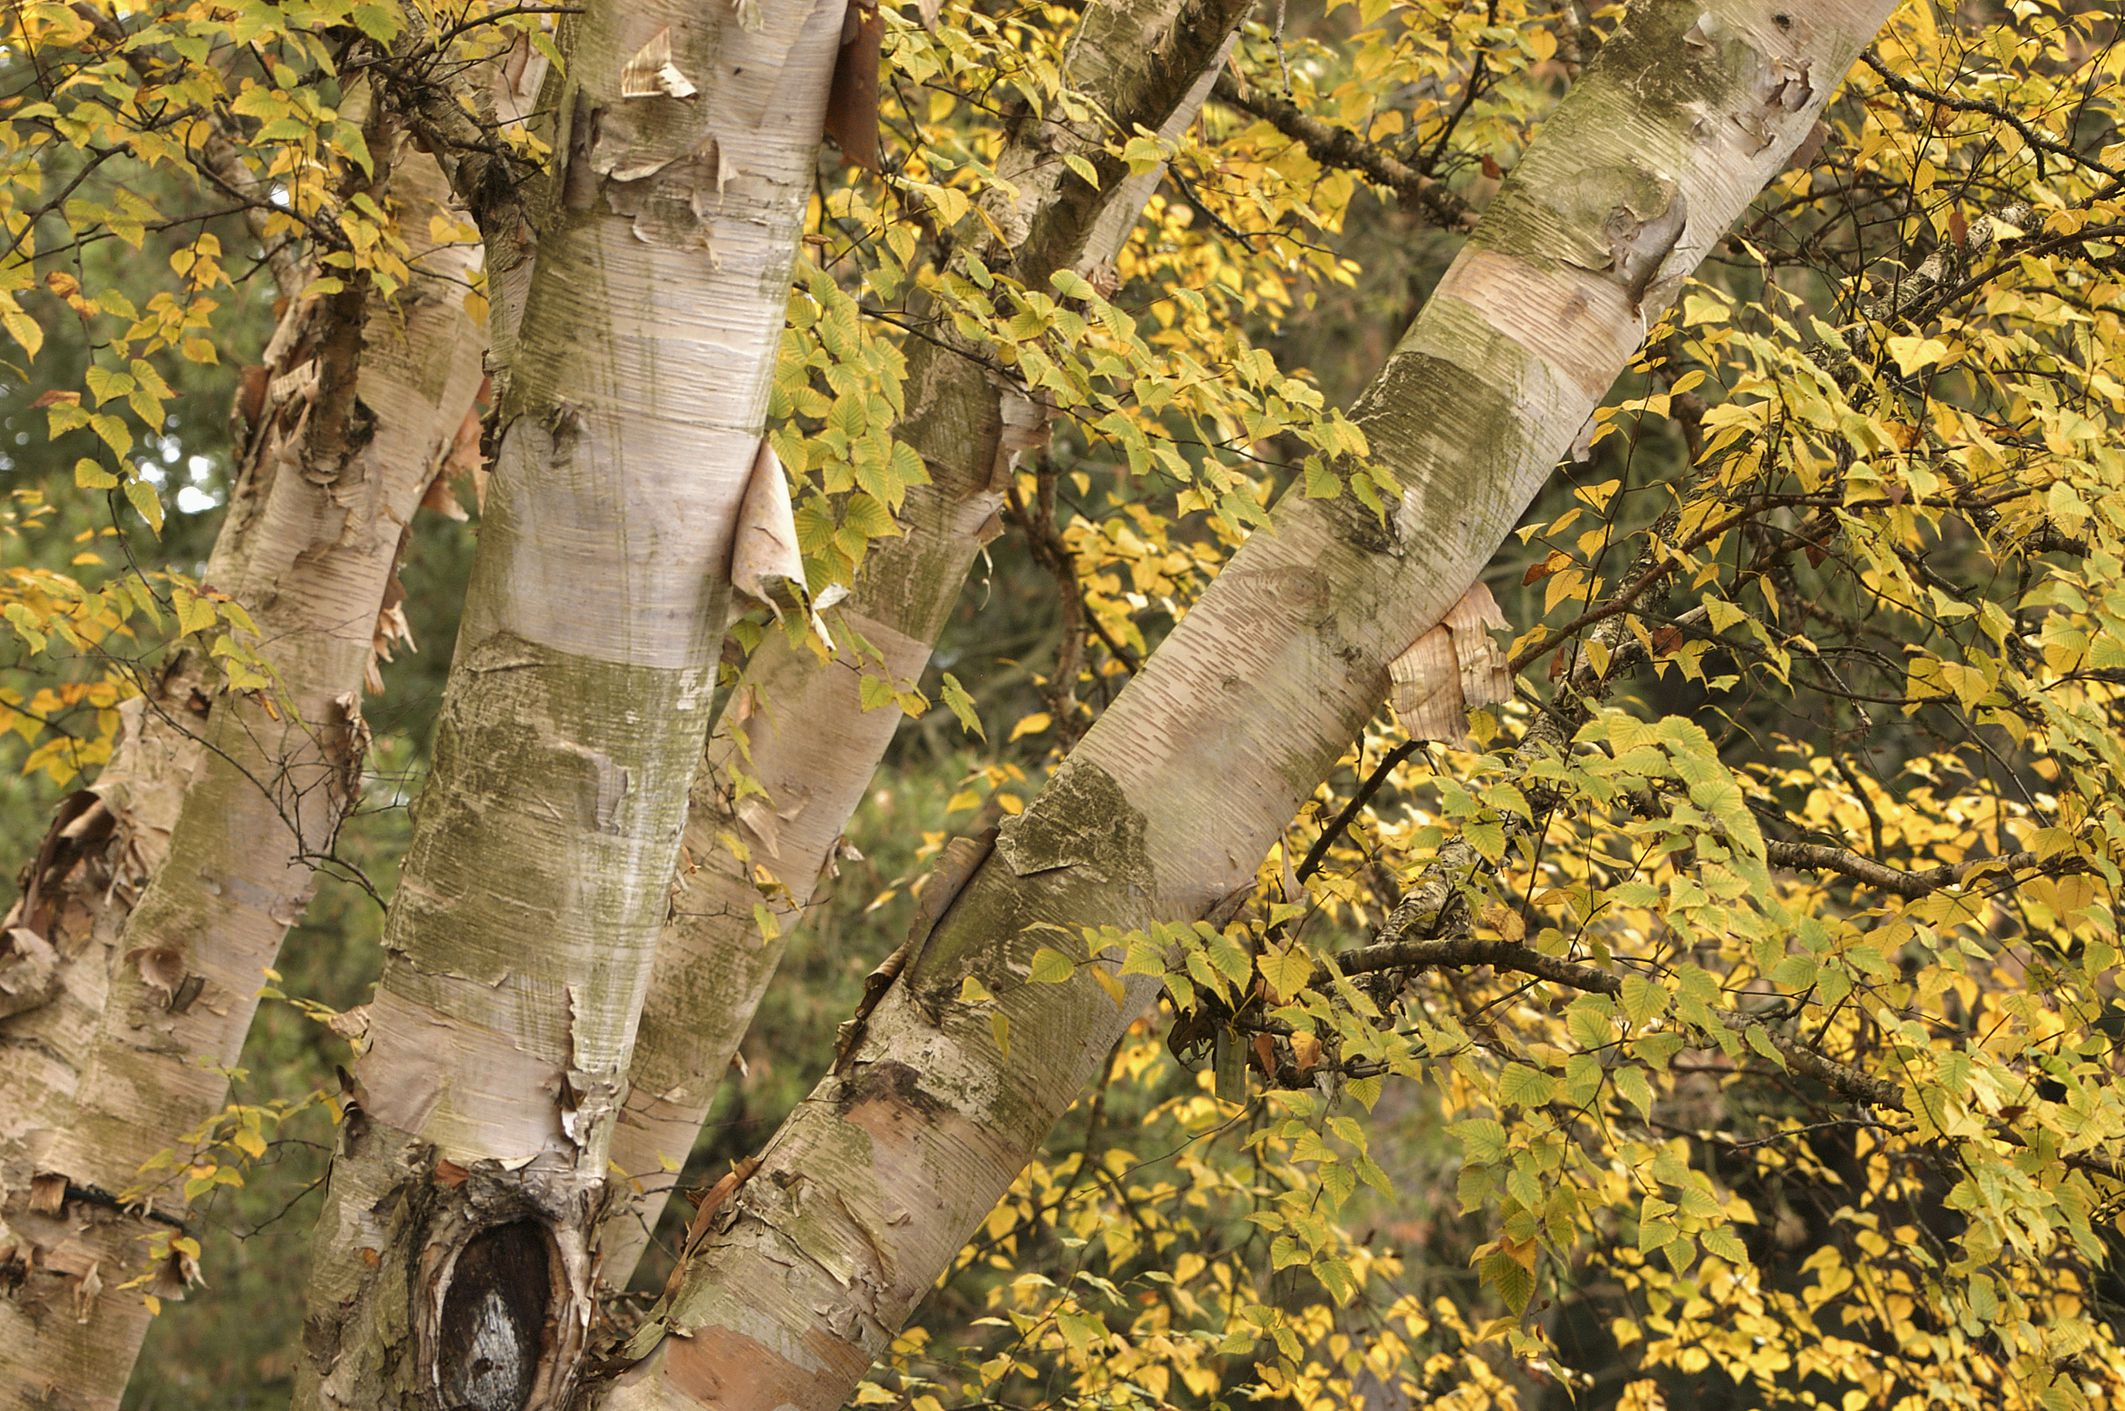 Paper birches with peeling bark and fall leaves.